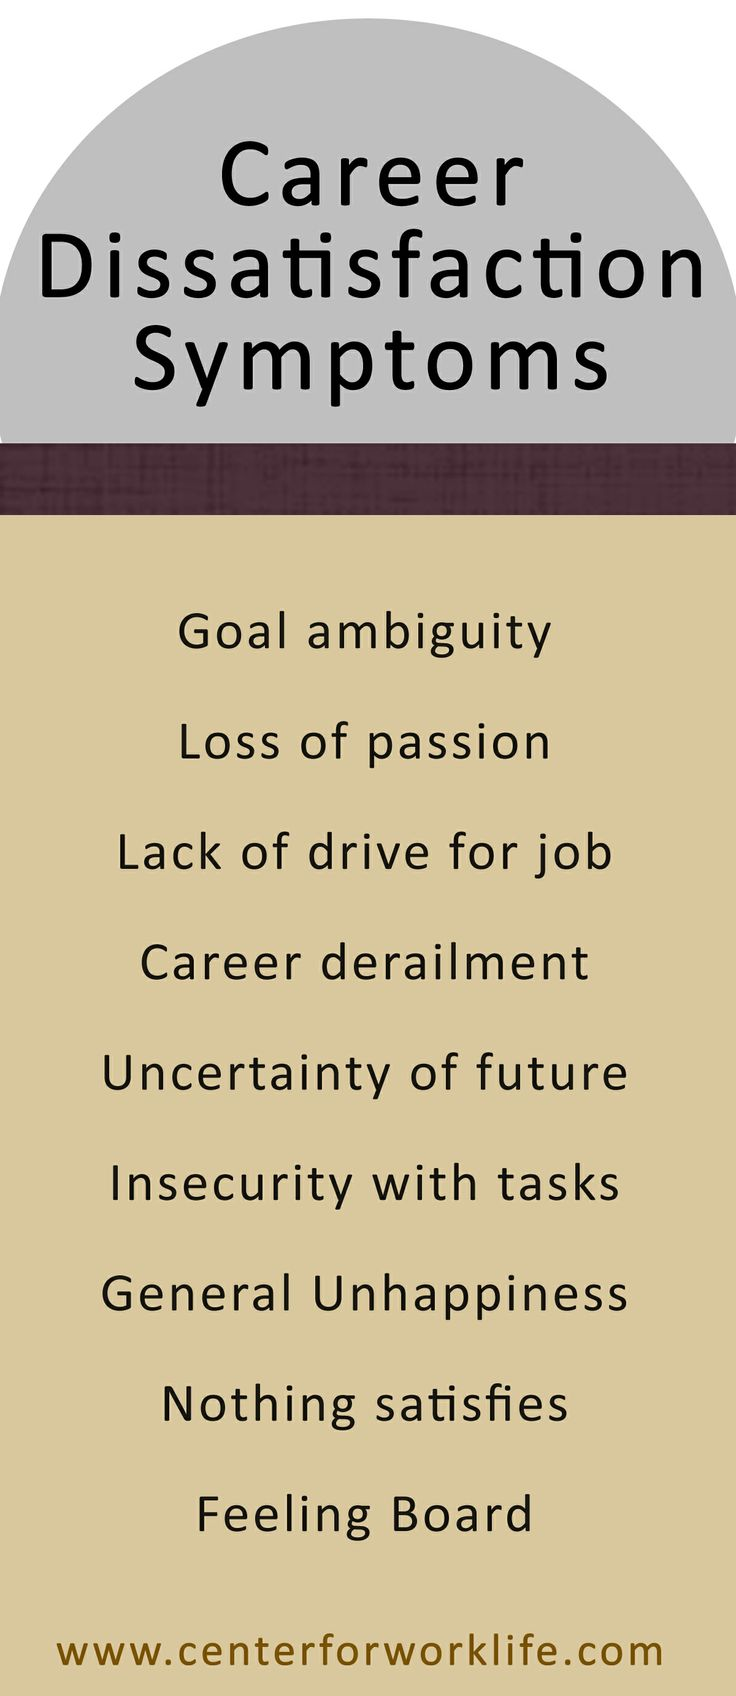 best images about career planning a career 9 symptoms of career dissatisfaction career careermanagement